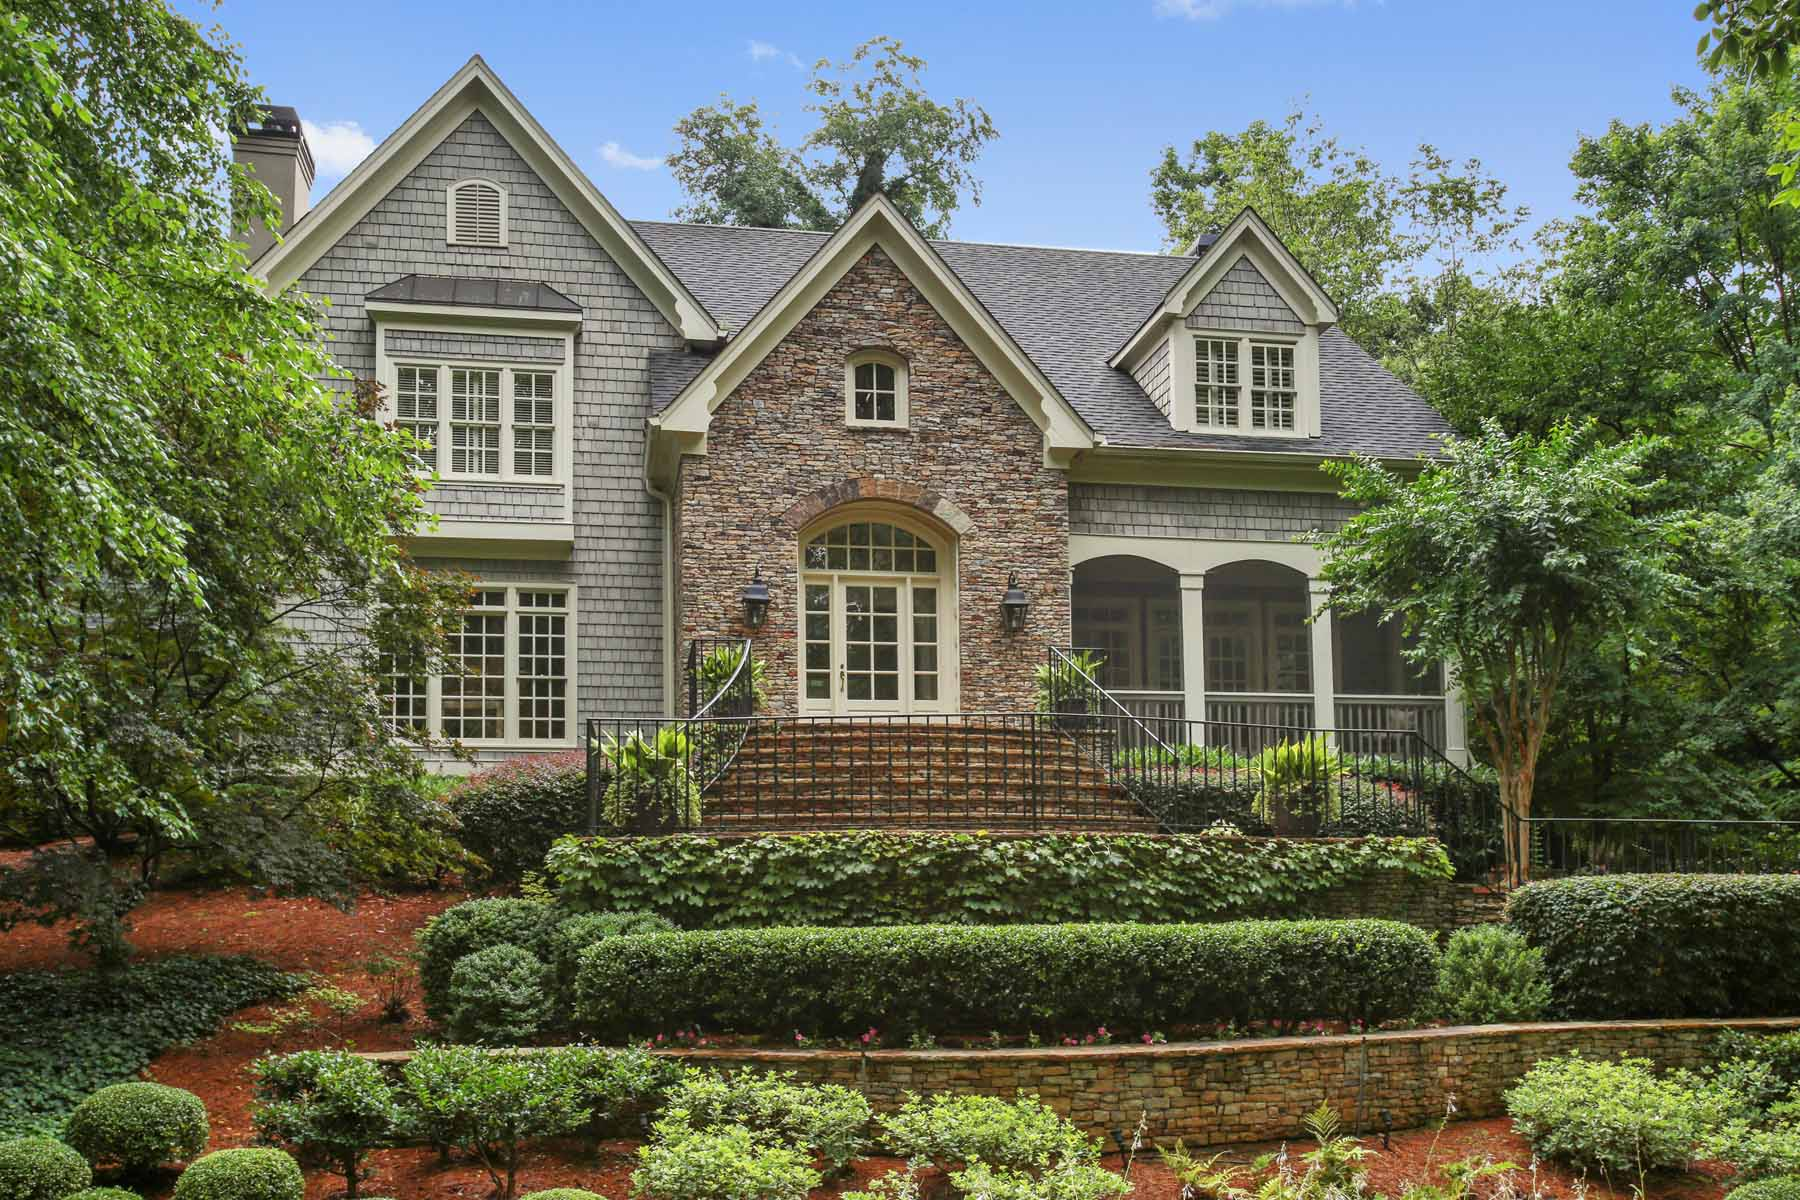 Single Family Home for Sale at Exquisite Historic Brookhaven 4412 Club Drive NE Brookhaven, Atlanta, Georgia, 30319 United States